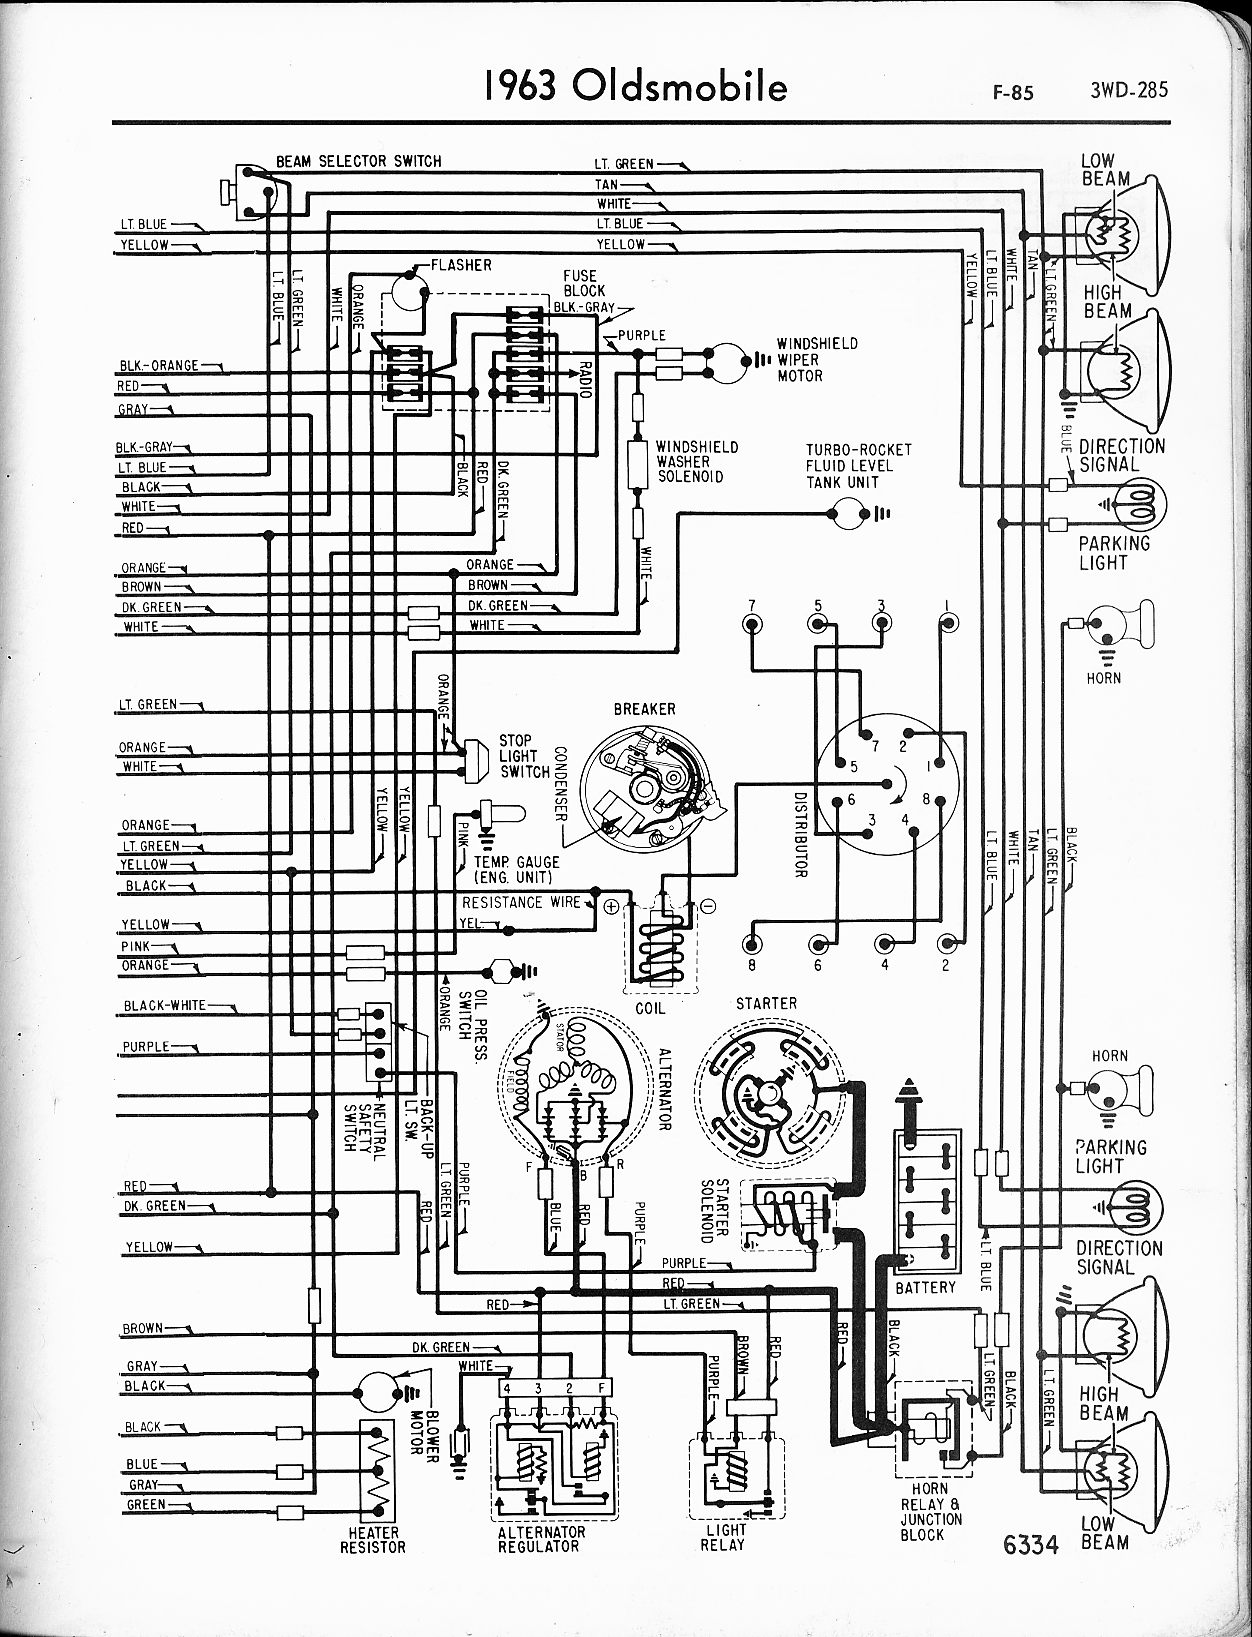 hk42fz009 wiring diagram